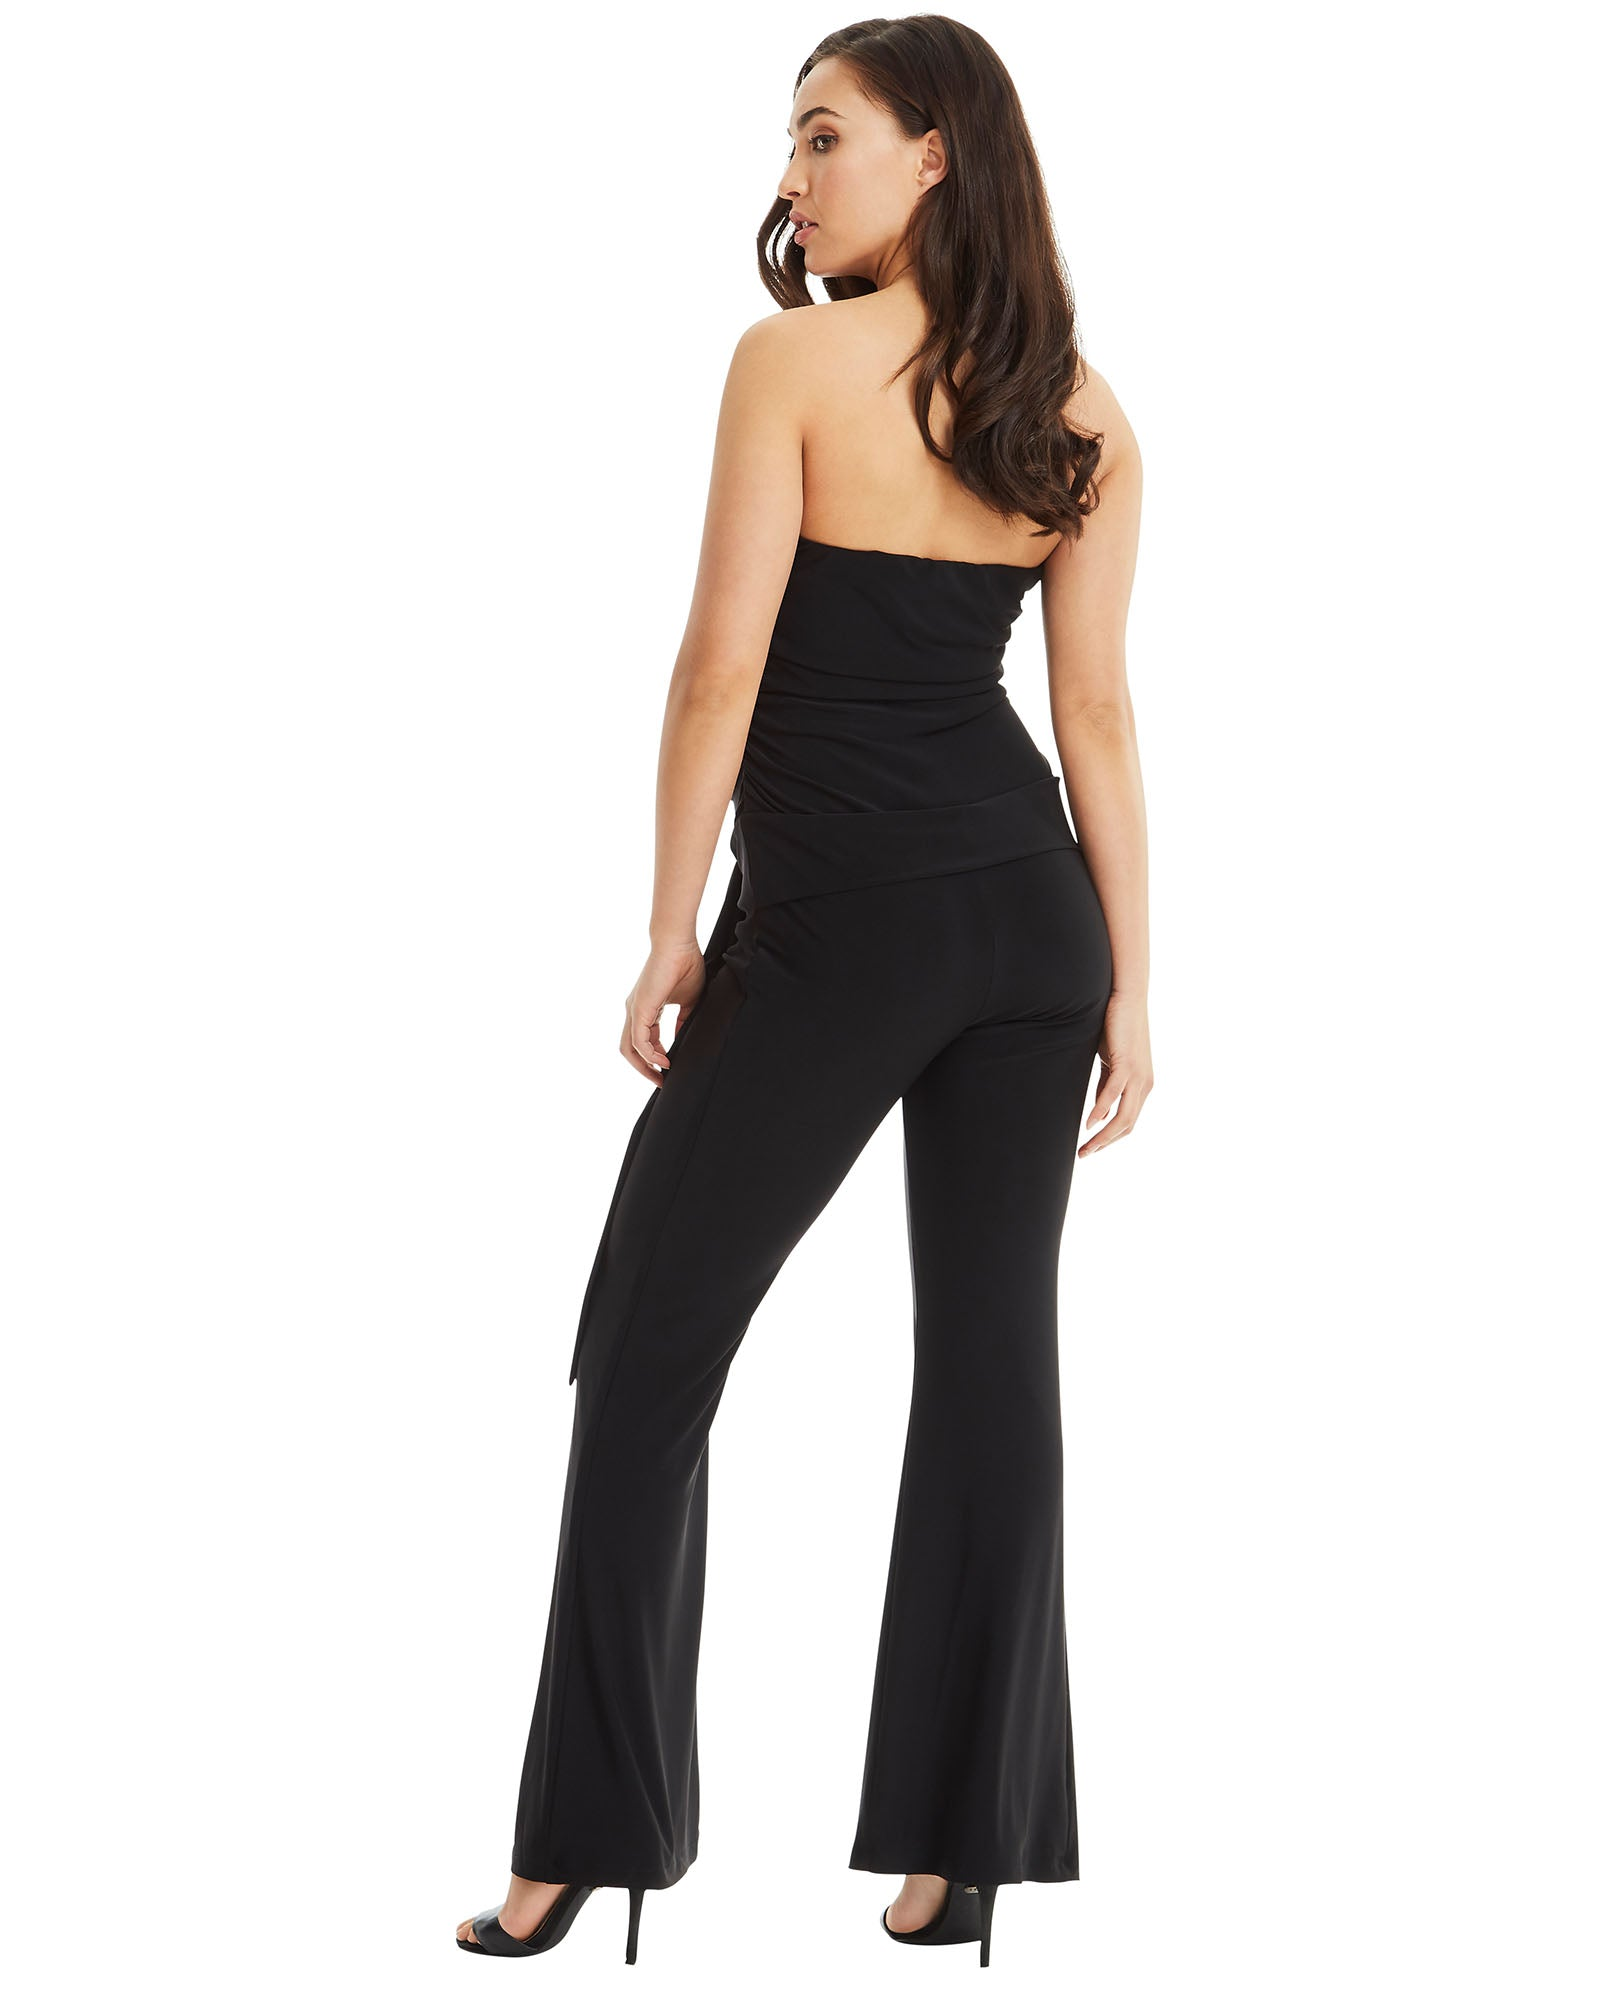 SKIVA strapless jumpsuit pantsuit black gold buckle stretch jersey elastane fabric fully lined